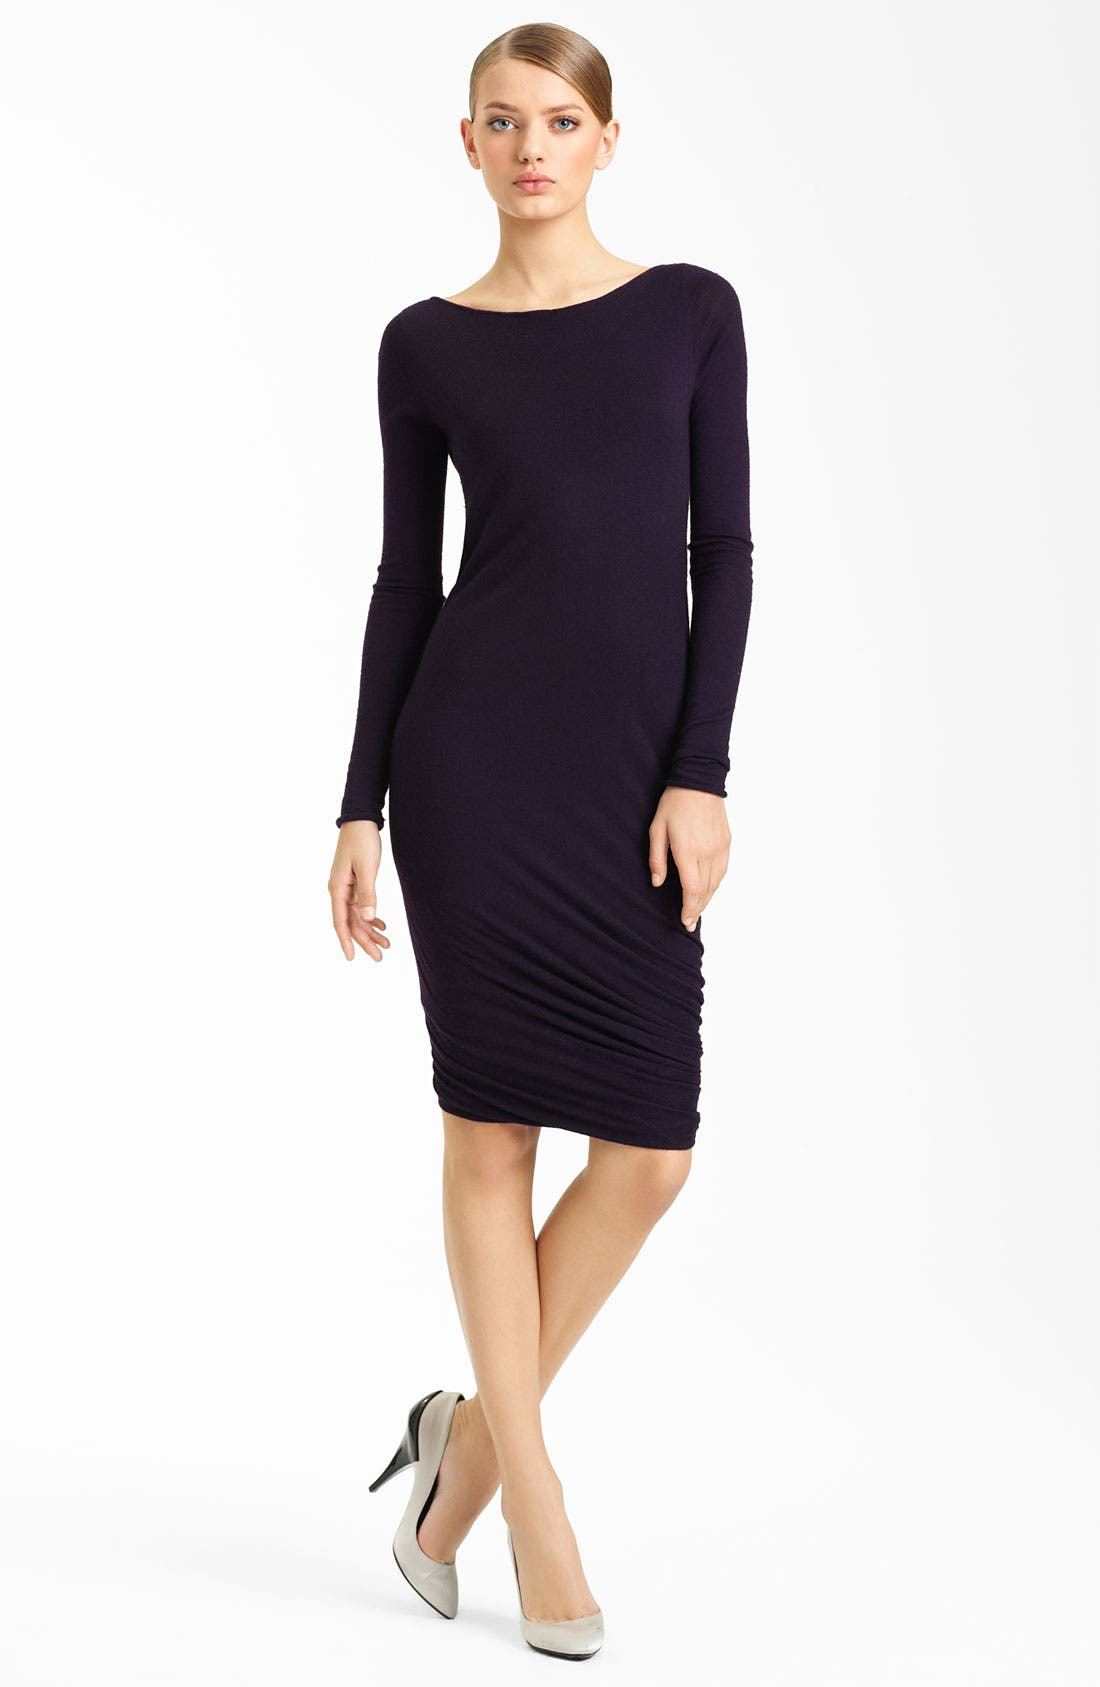 Alternate Image 1 Selected - Donna Karan Collection Twisted Hem Cashmere Dress